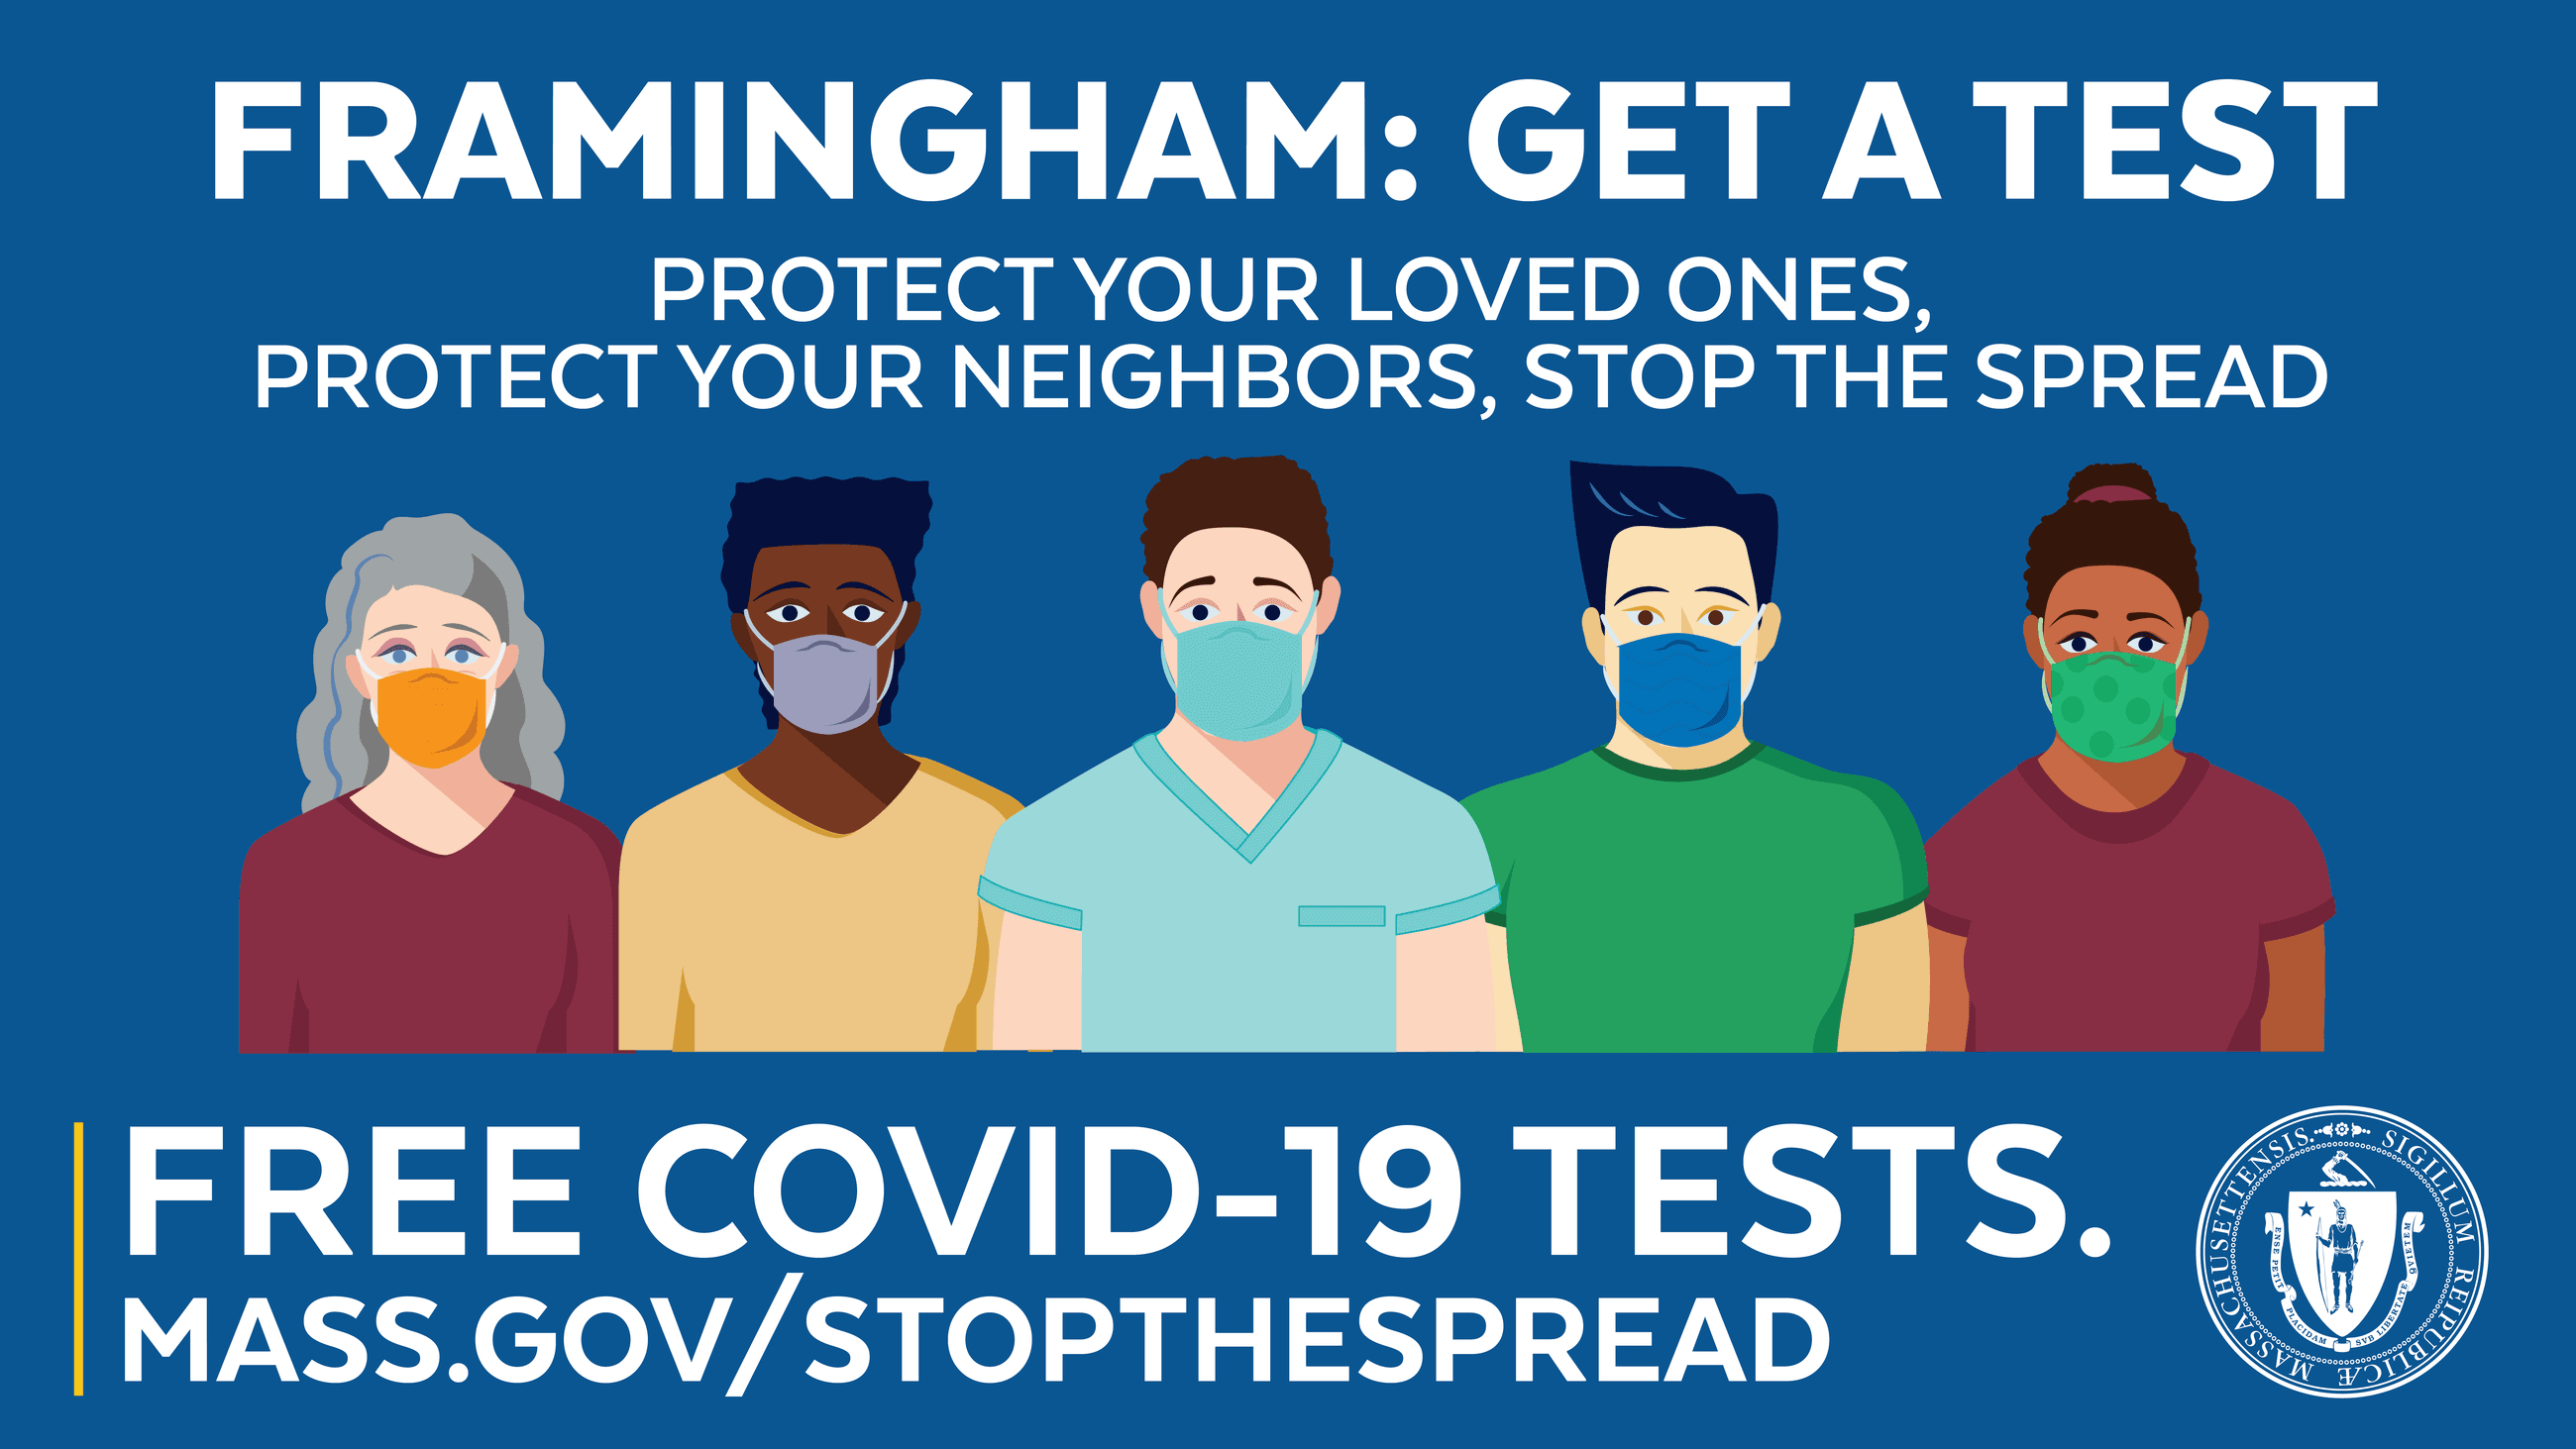 Photo of people wearing face coverings. Text: Framingham: Get a Test, Protect your loved ones